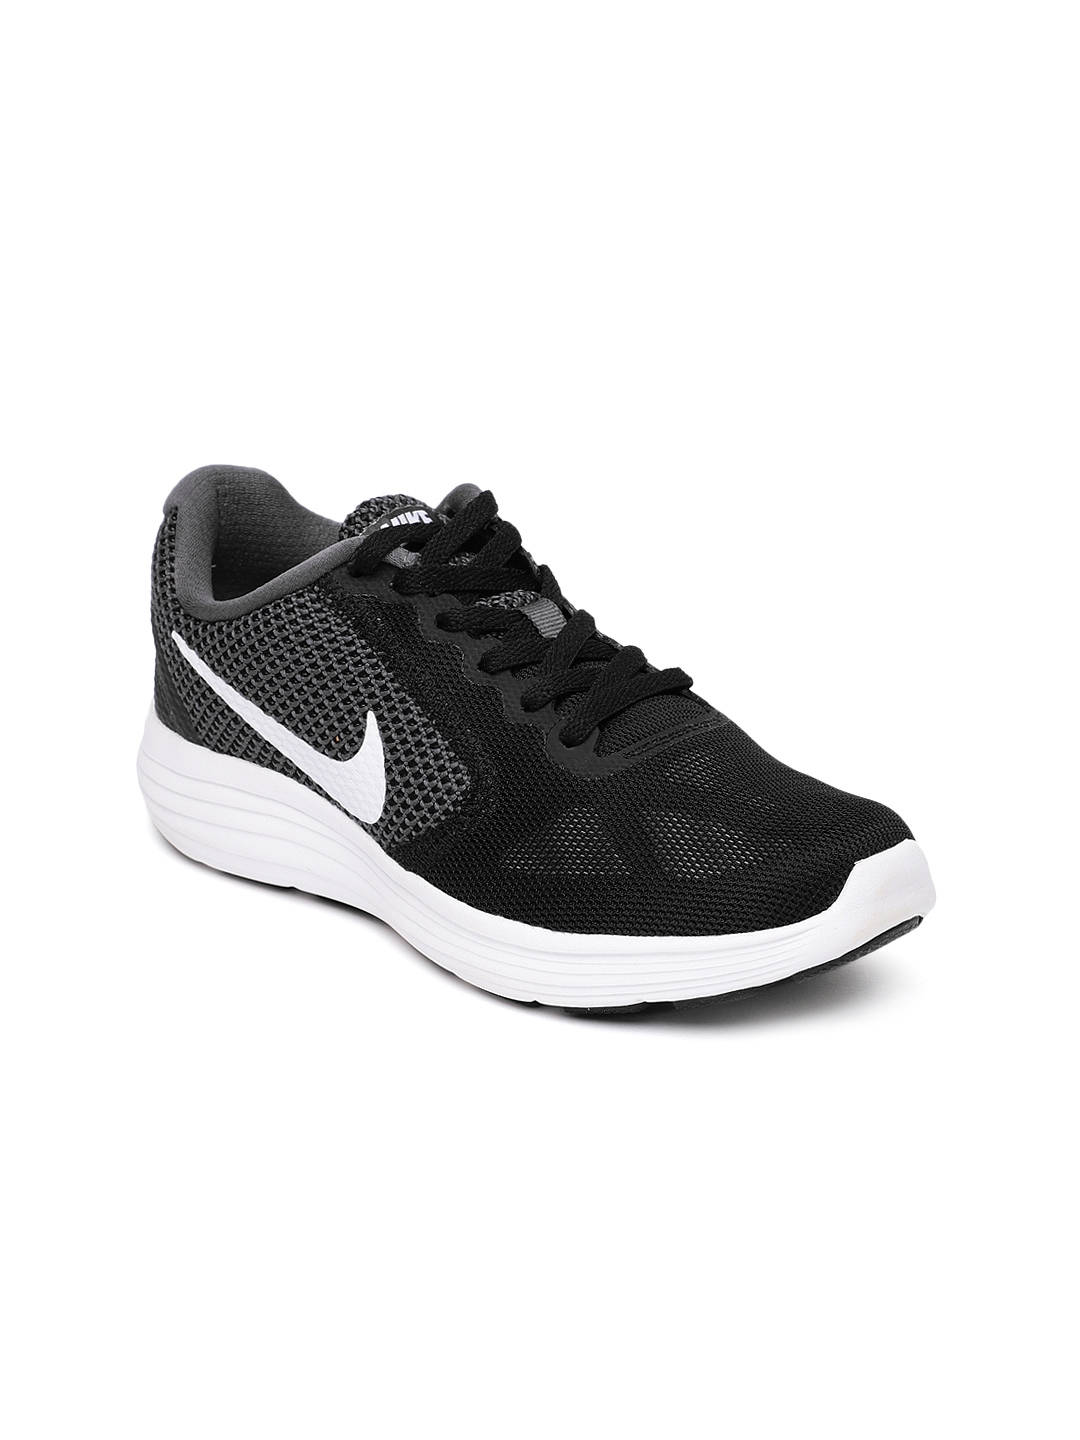 917af027519 Buy Nike Women Black Revolution 3 Running Shoes - Sports Shoes for ...